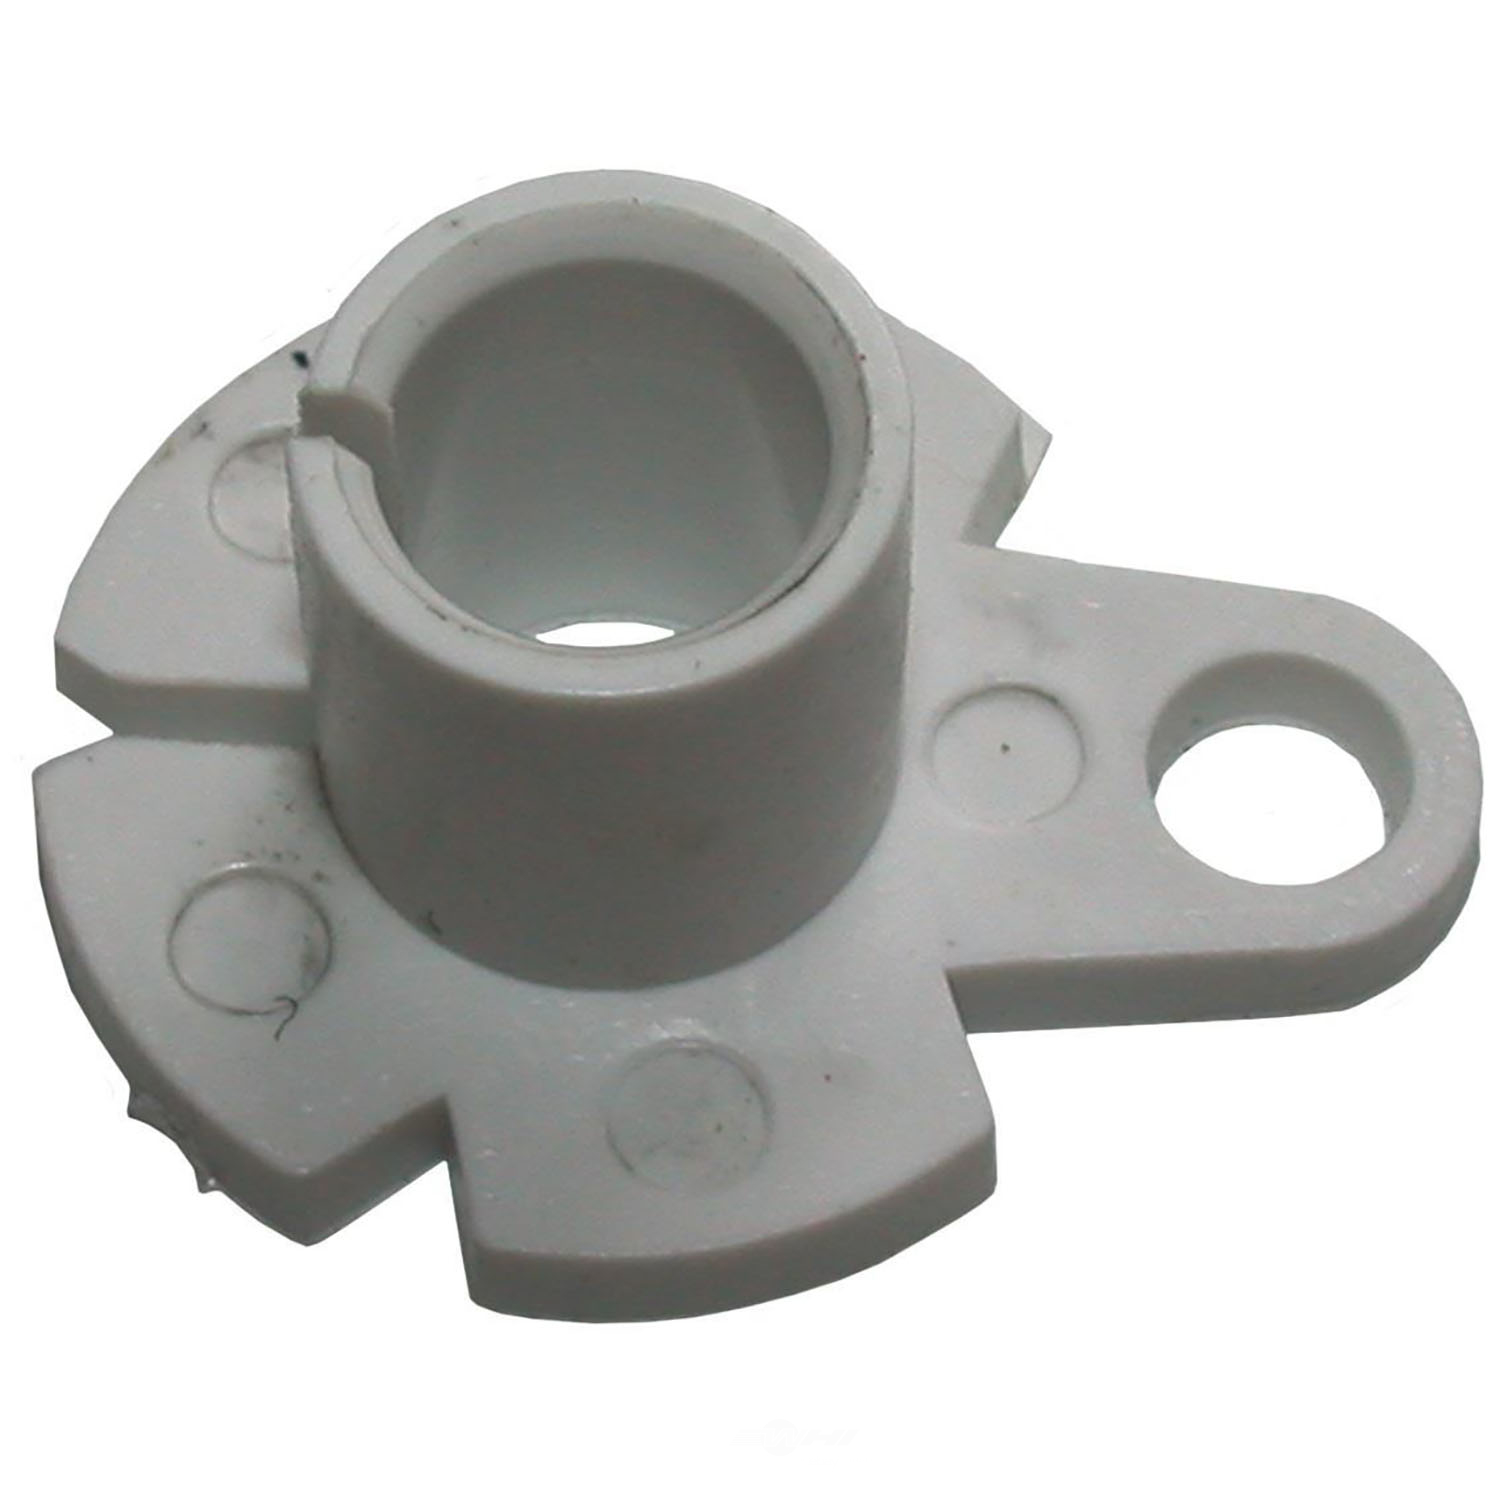 NEEDA PARTS MANUFACTURING - HEATER CORE REMOVAL TOOL - NPM 800-450